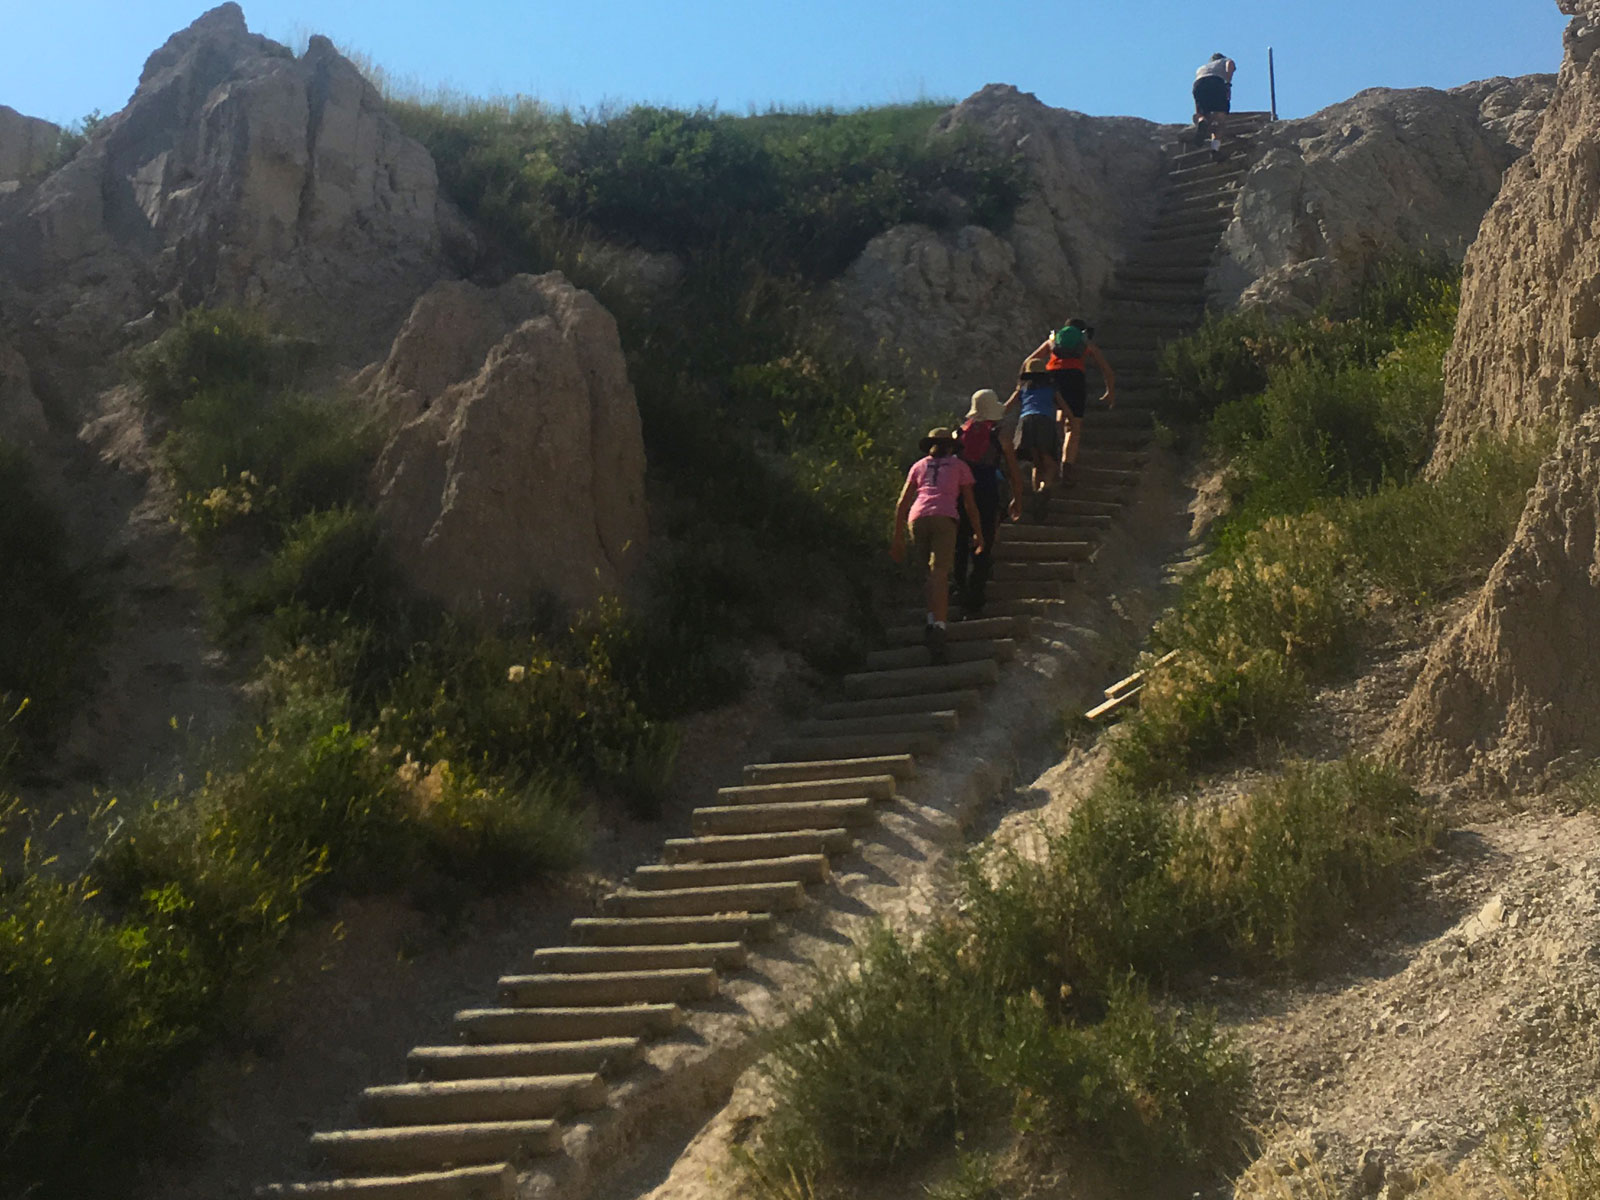 Family hiking ladder on Notch Trail in Badlands National Park, South Dakota